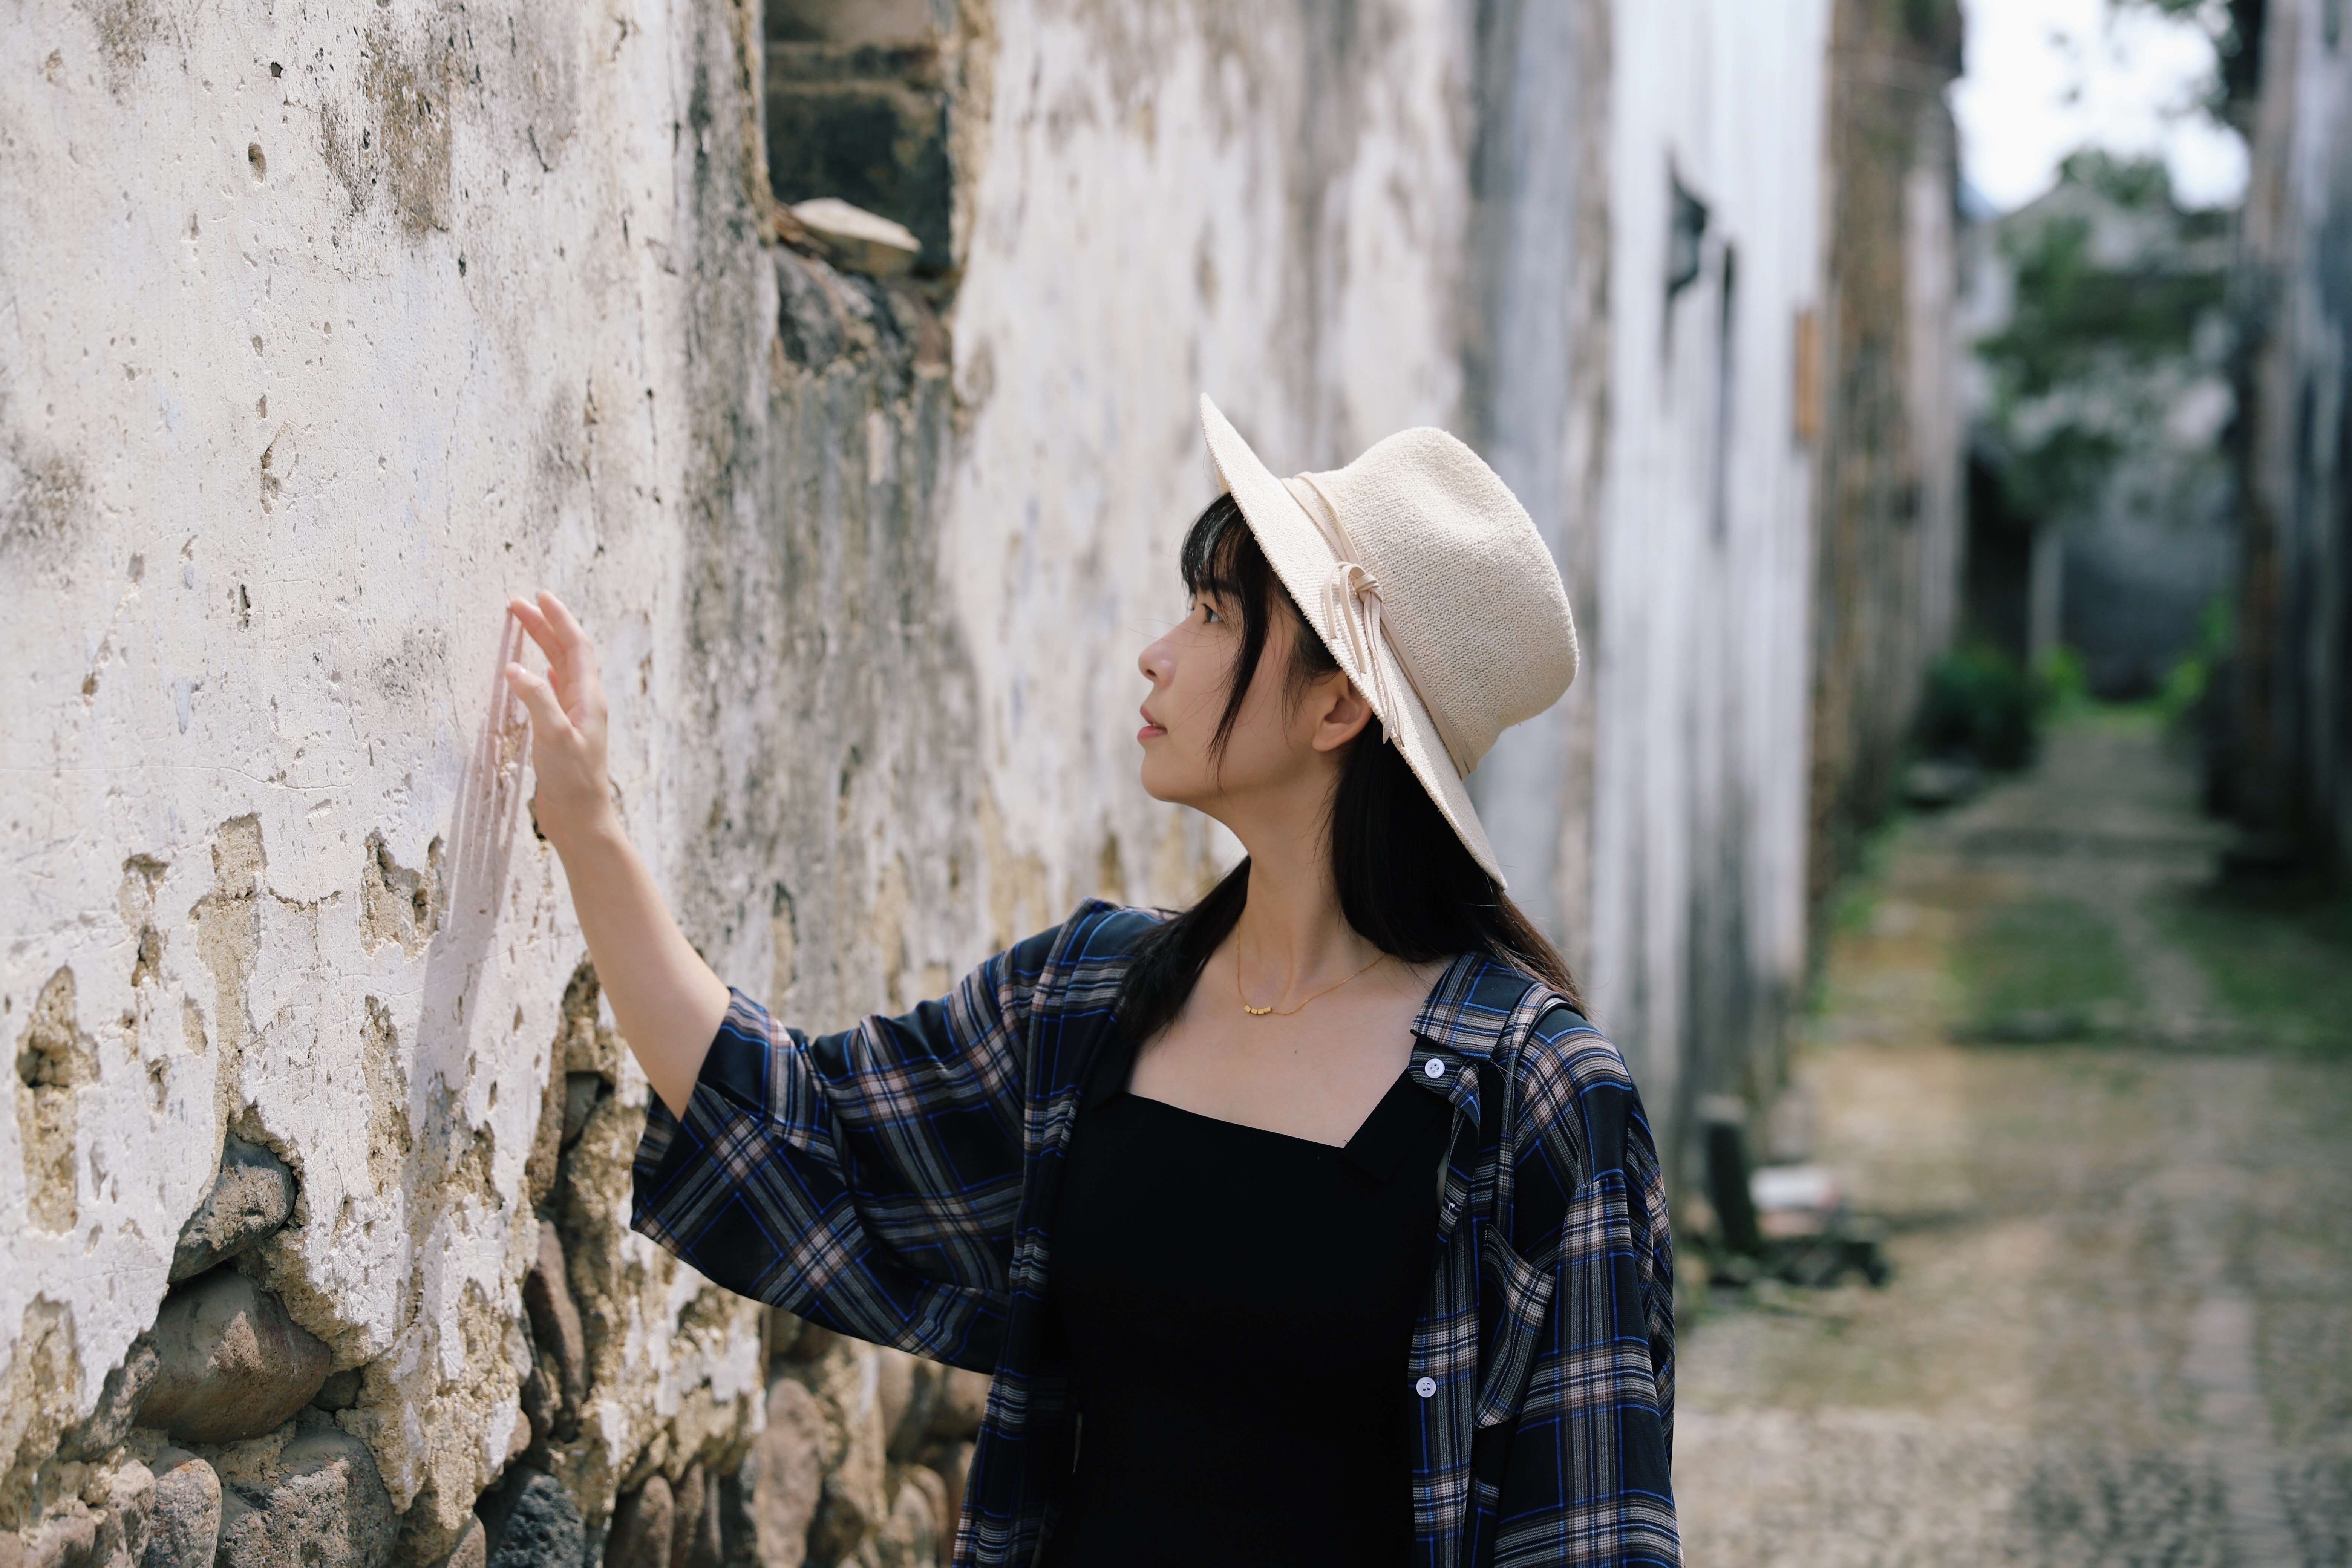 selective focus photography of woman touching wall